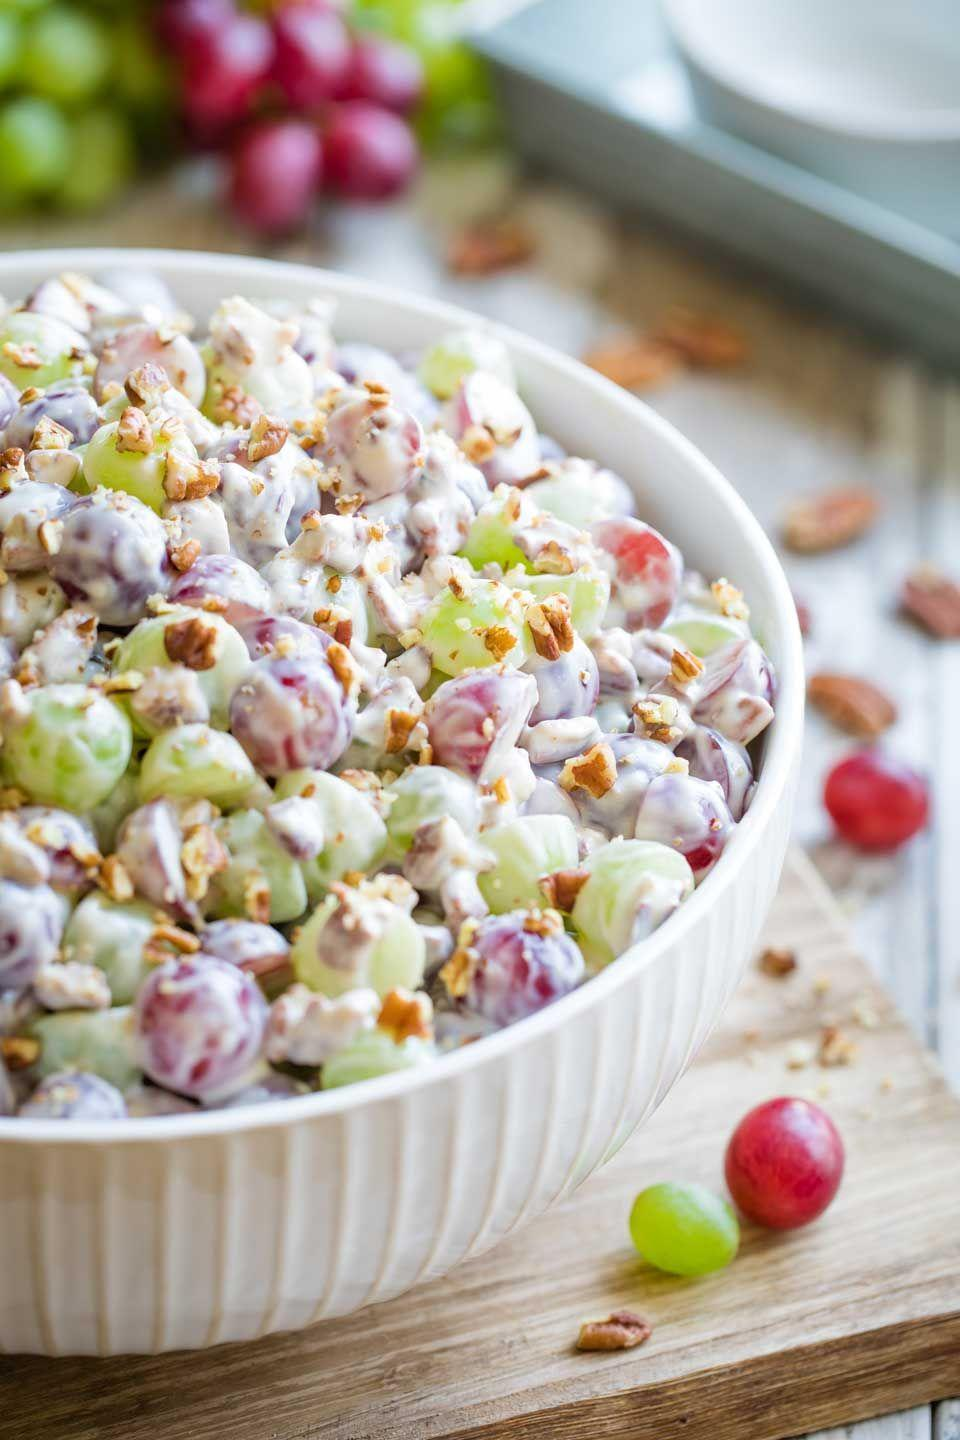 """<p>This classic summertime salad is loaded with refreshing grapes coated in sweet and creamy sauce. To the uninitiated, it may look a bit strange, but we can pretty much guarantee you'll find yourself going back for seconds. </p><p><a href=""""https://twohealthykitchens.com/grape-salad/"""" rel=""""nofollow noopener"""" target=""""_blank"""" data-ylk=""""slk:Get the recipe."""" class=""""link rapid-noclick-resp"""">Get the recipe. </a></p>"""